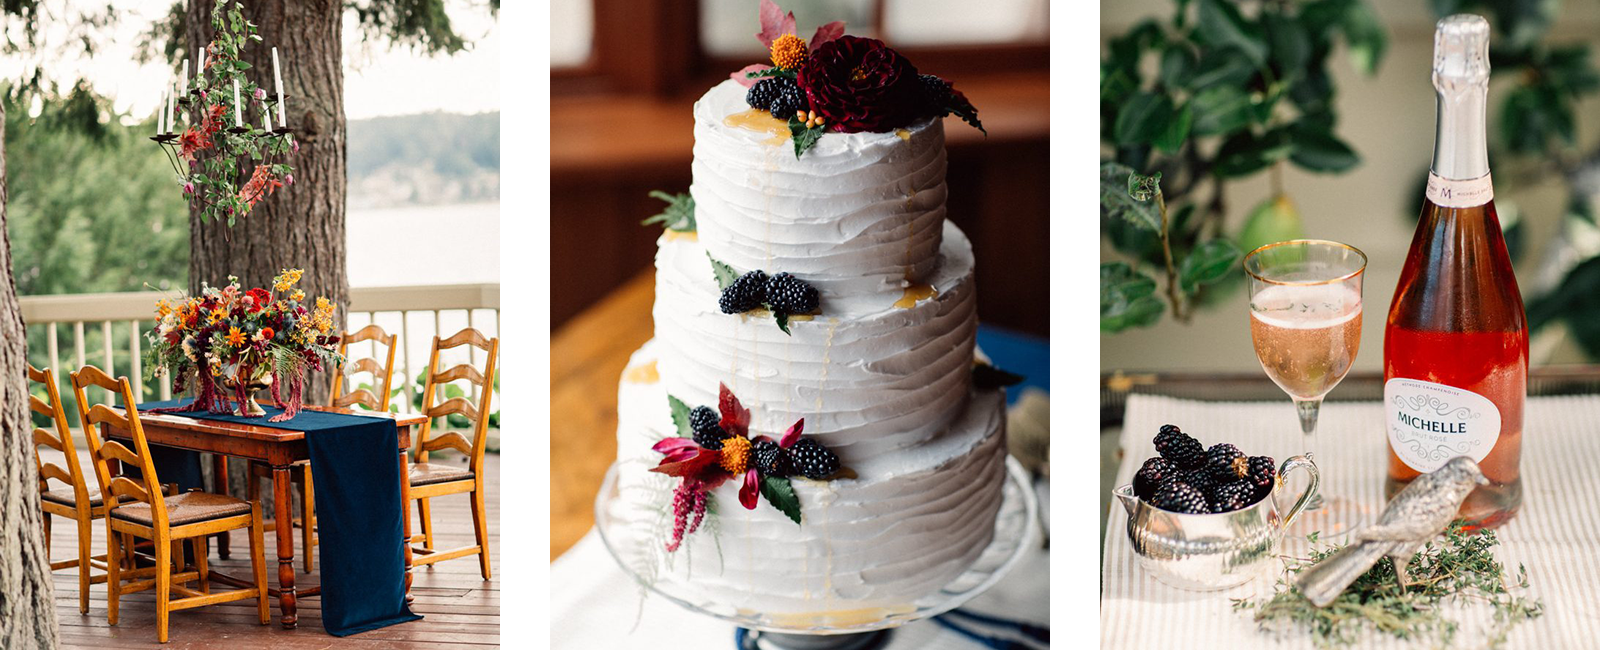 Flowers and Wedding Planning for Whidbey Island weddings and events